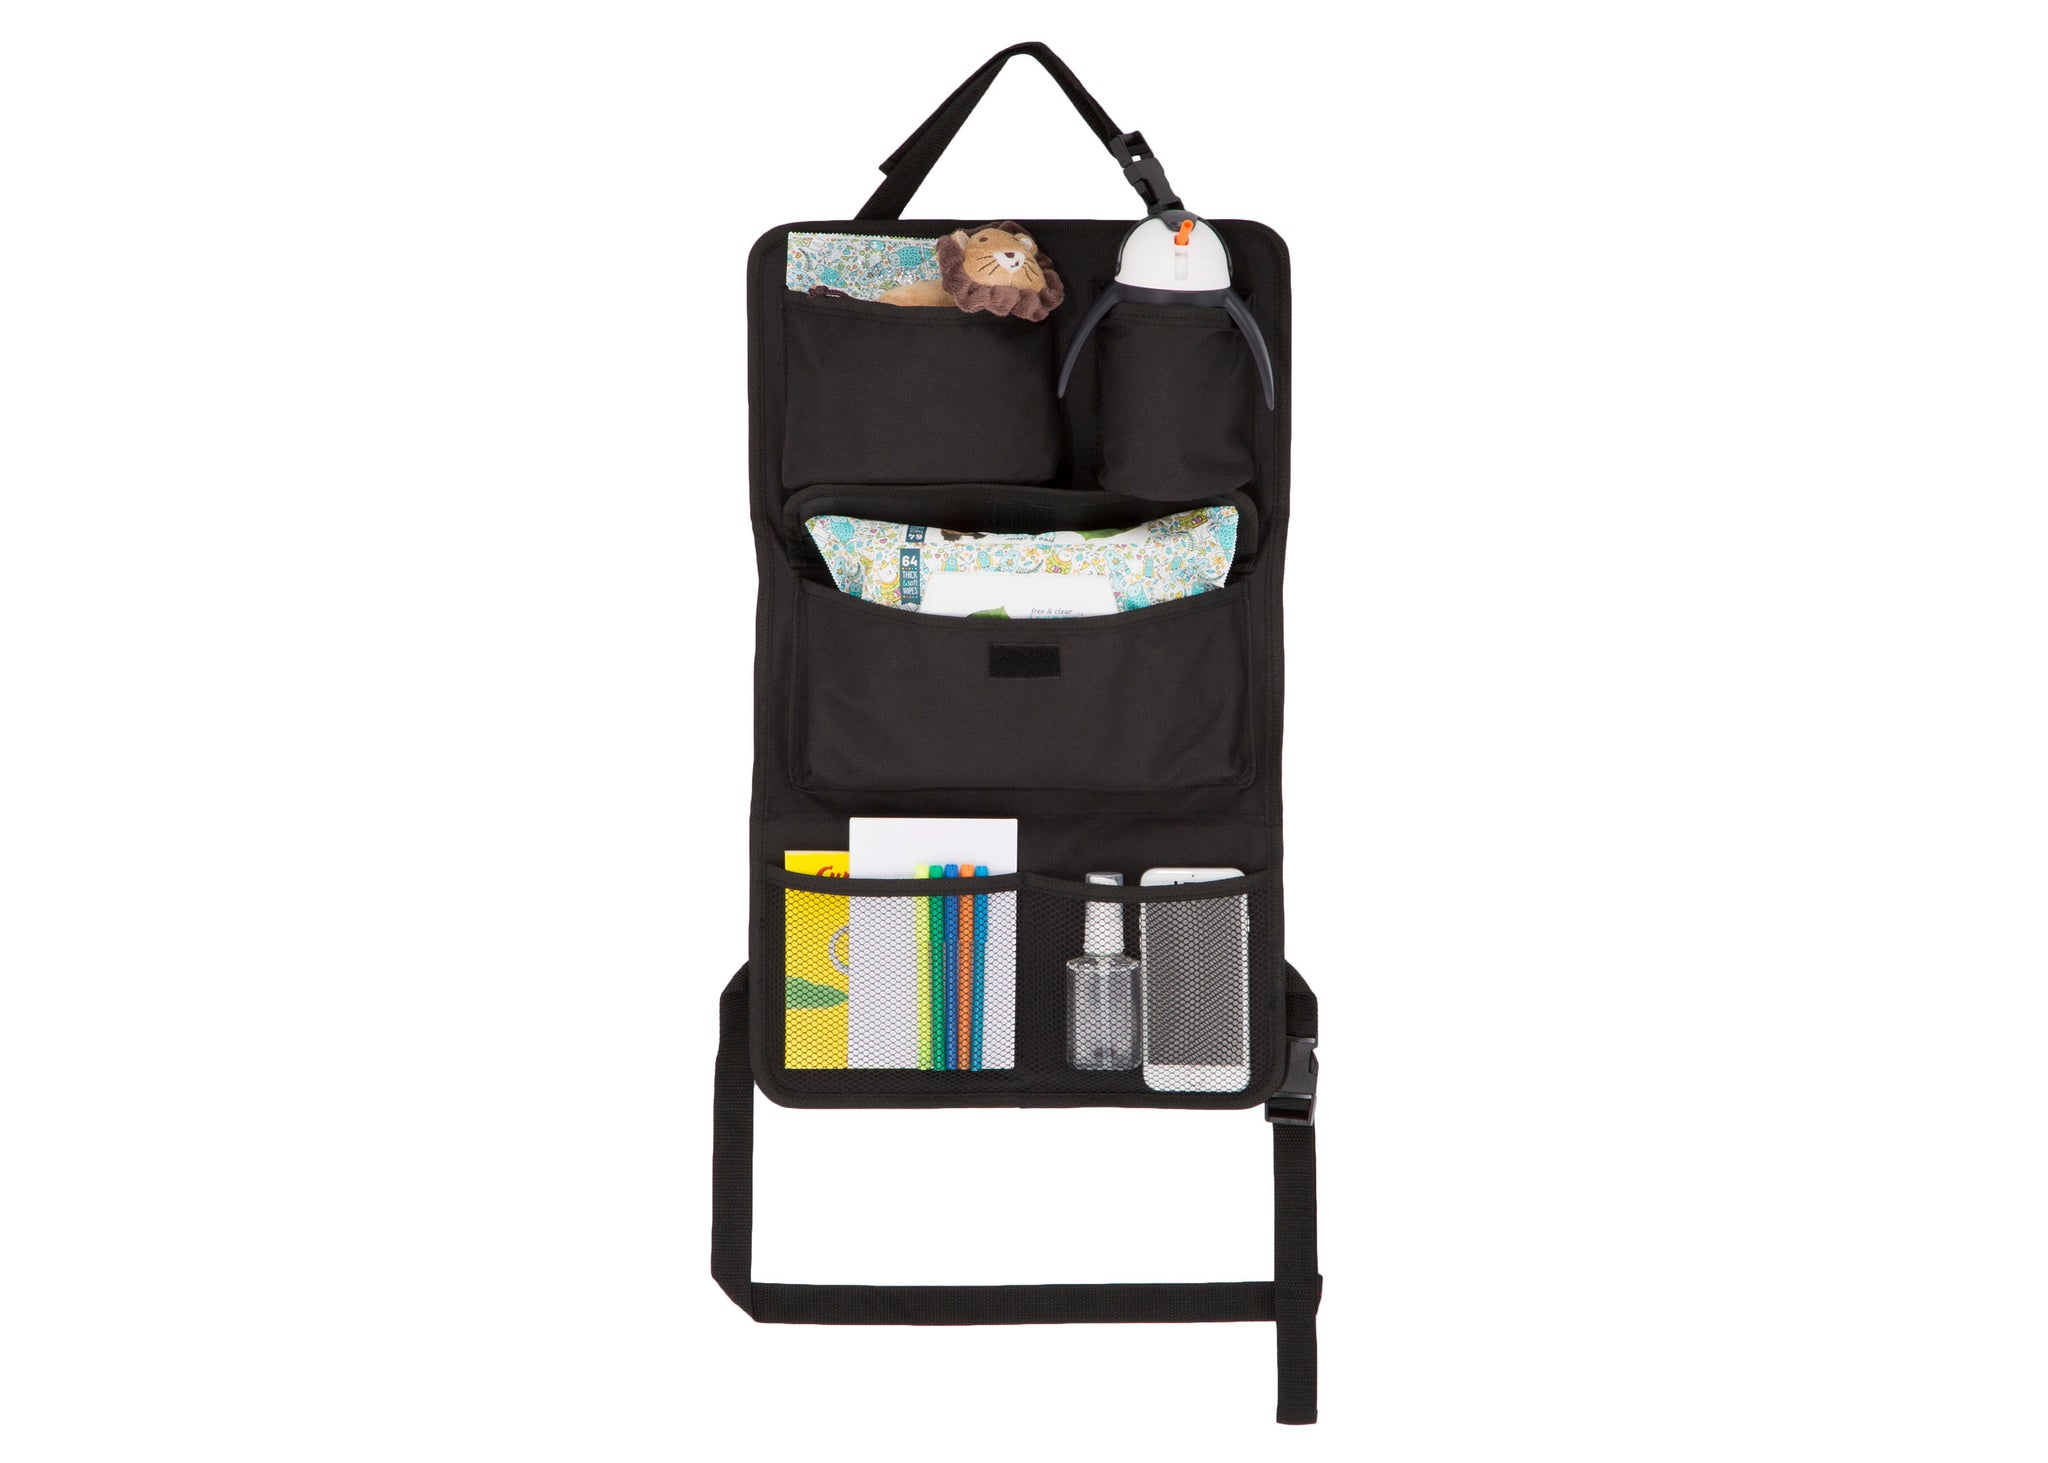 Delta Children Black (001) Backseat Car Organizer Front View with Props a2a